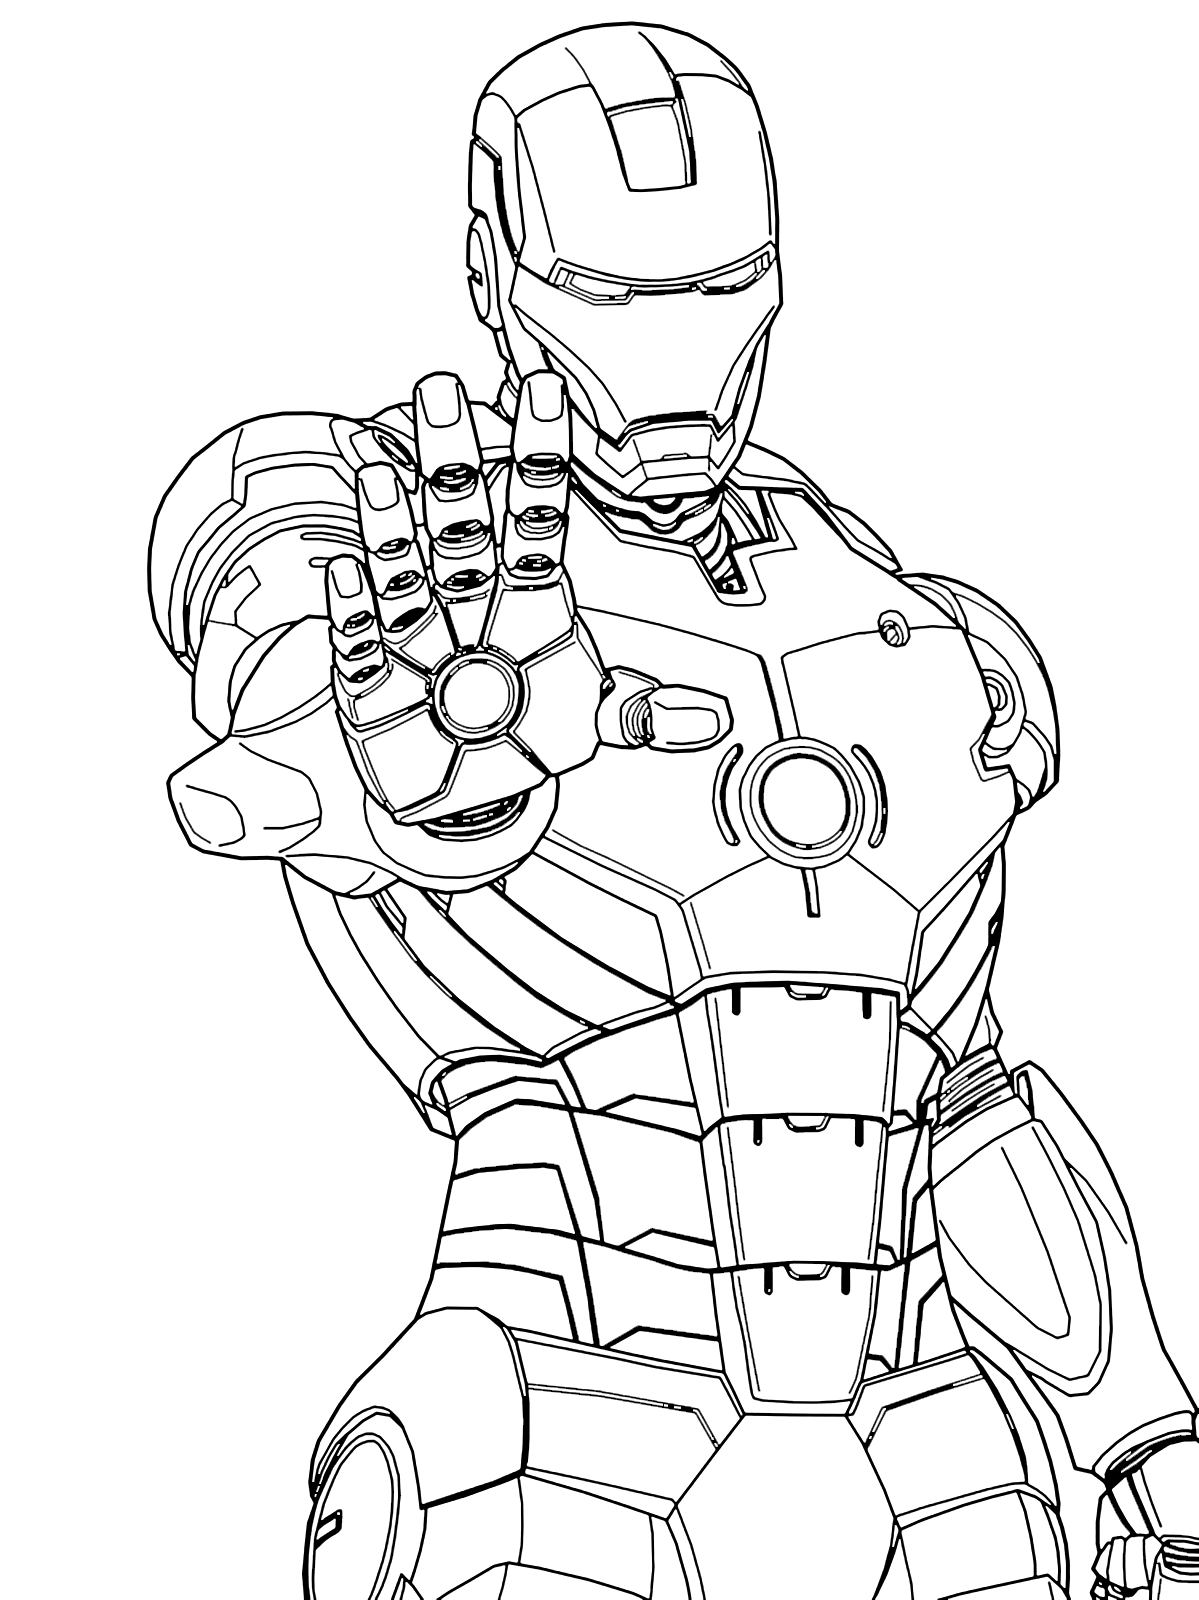 coloring sheets iron man coloring pages for kids free images iron man avengers coloring iron man sheets